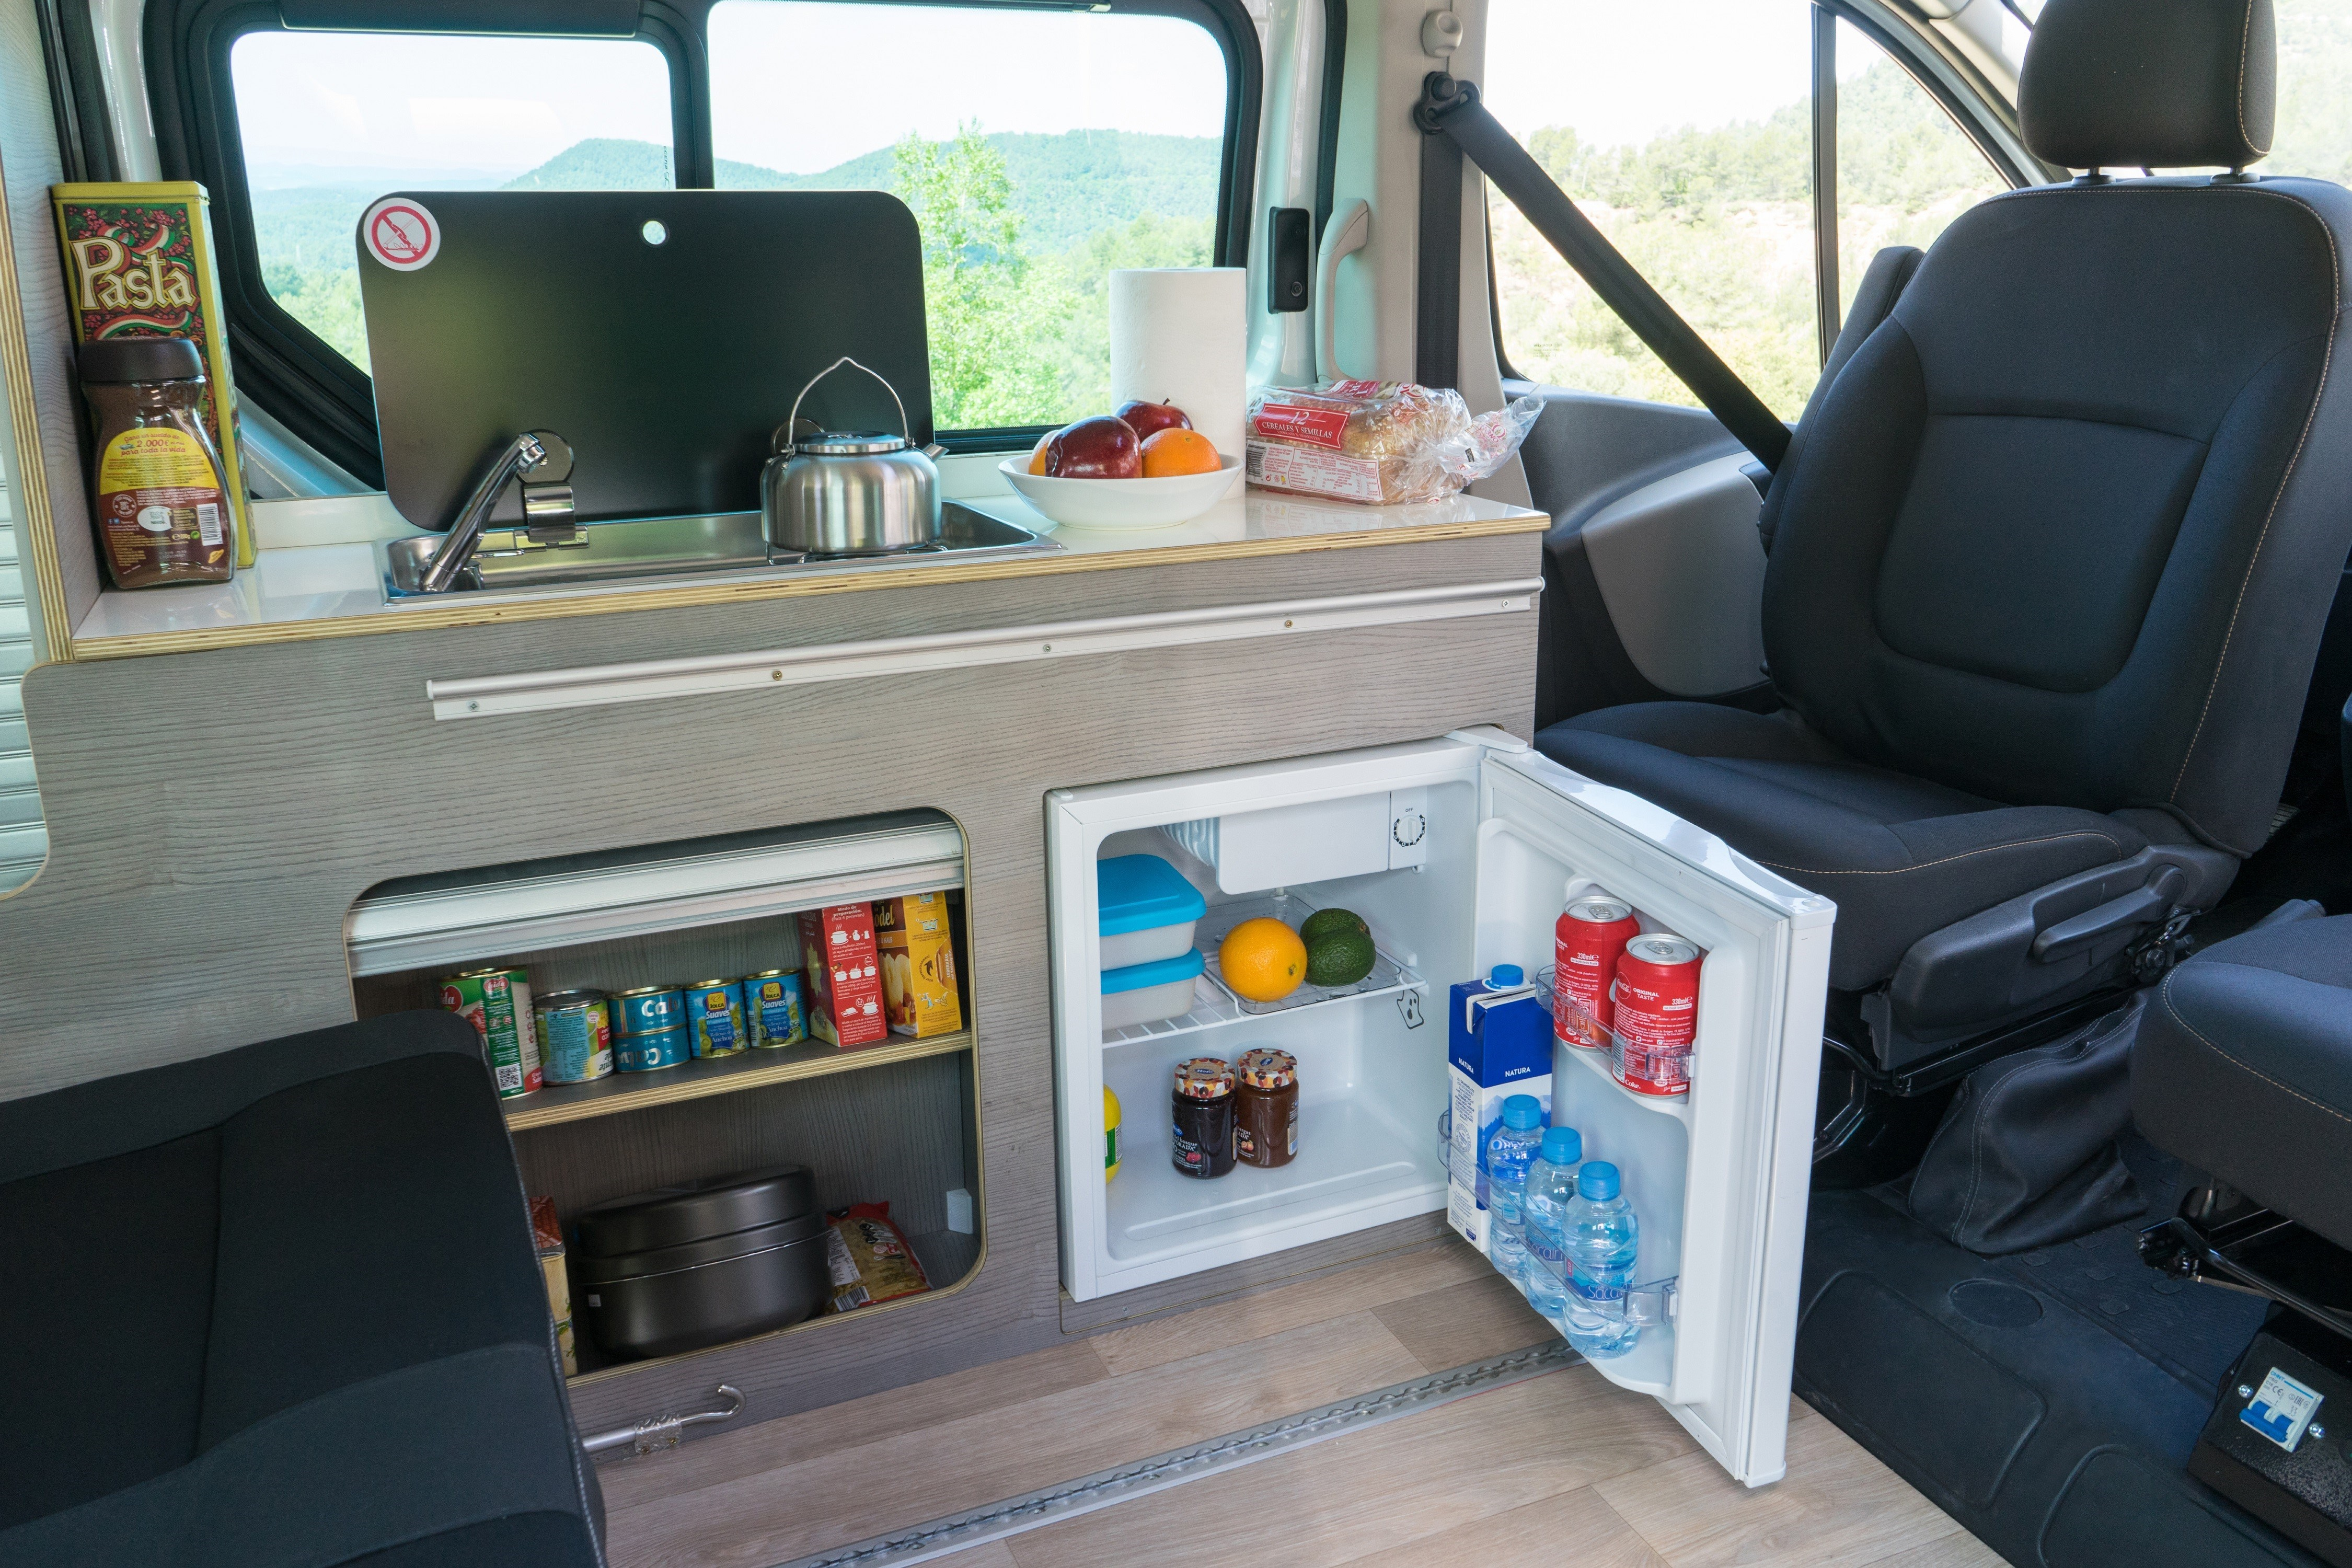 Nissan unveils all-electric camper based on the e-NV200 van